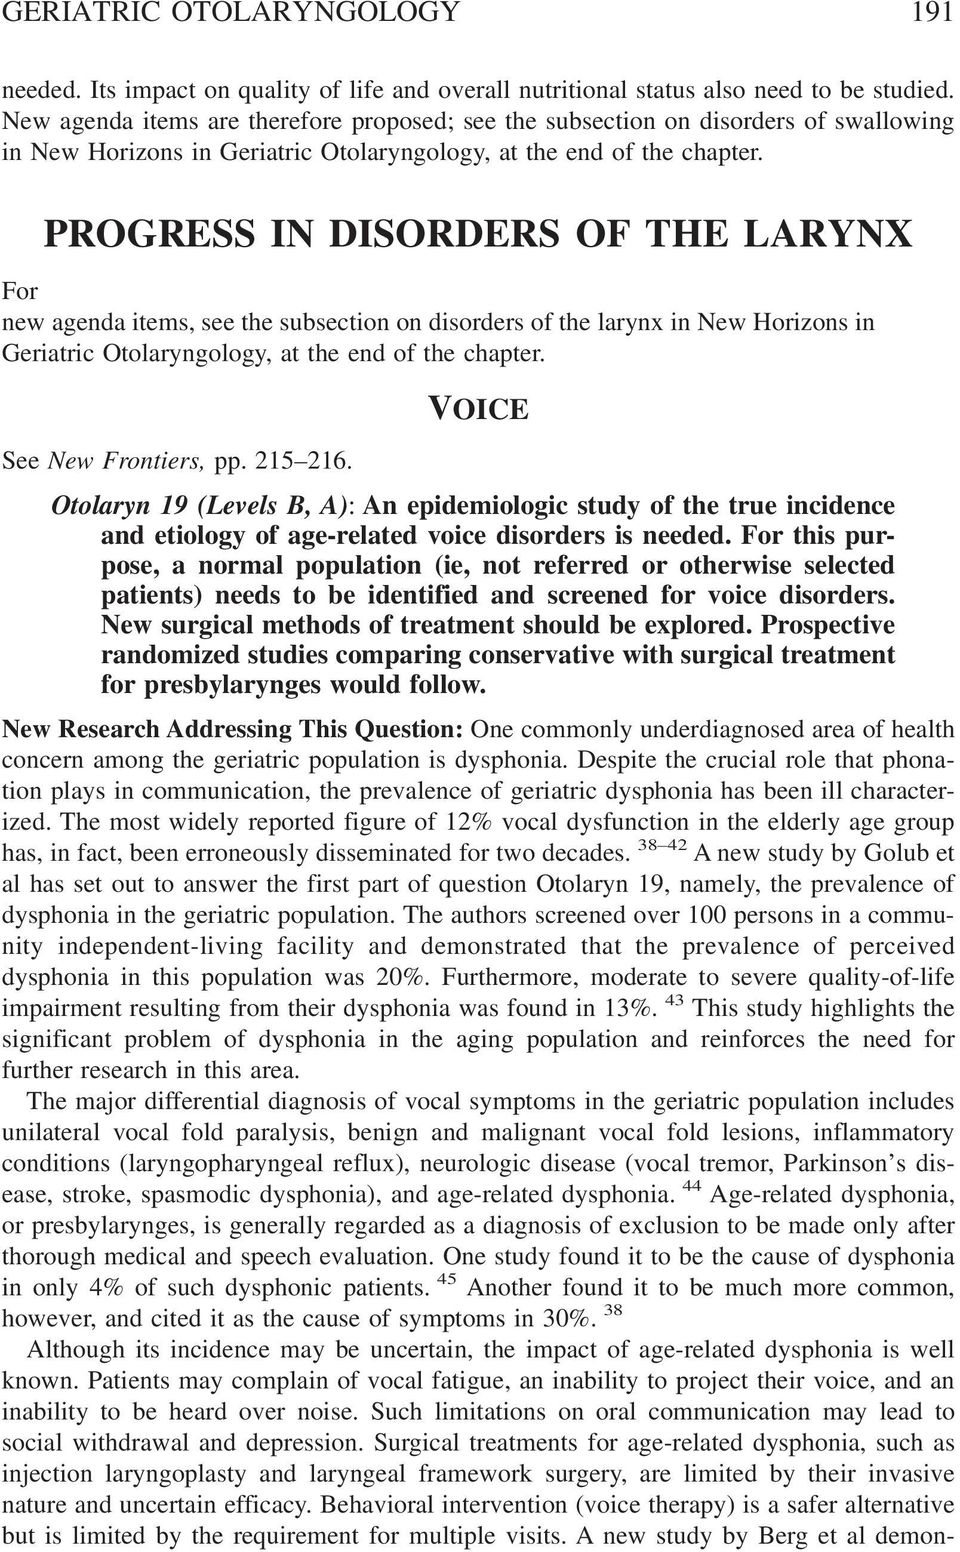 PROGRESS IN DISORDERS OF THE LARYNX For new agenda items, see the subsection on disorders of the larynx in New Horizons in Geriatric Otolaryngology, at the end of the chapter. See New Frontiers, pp.